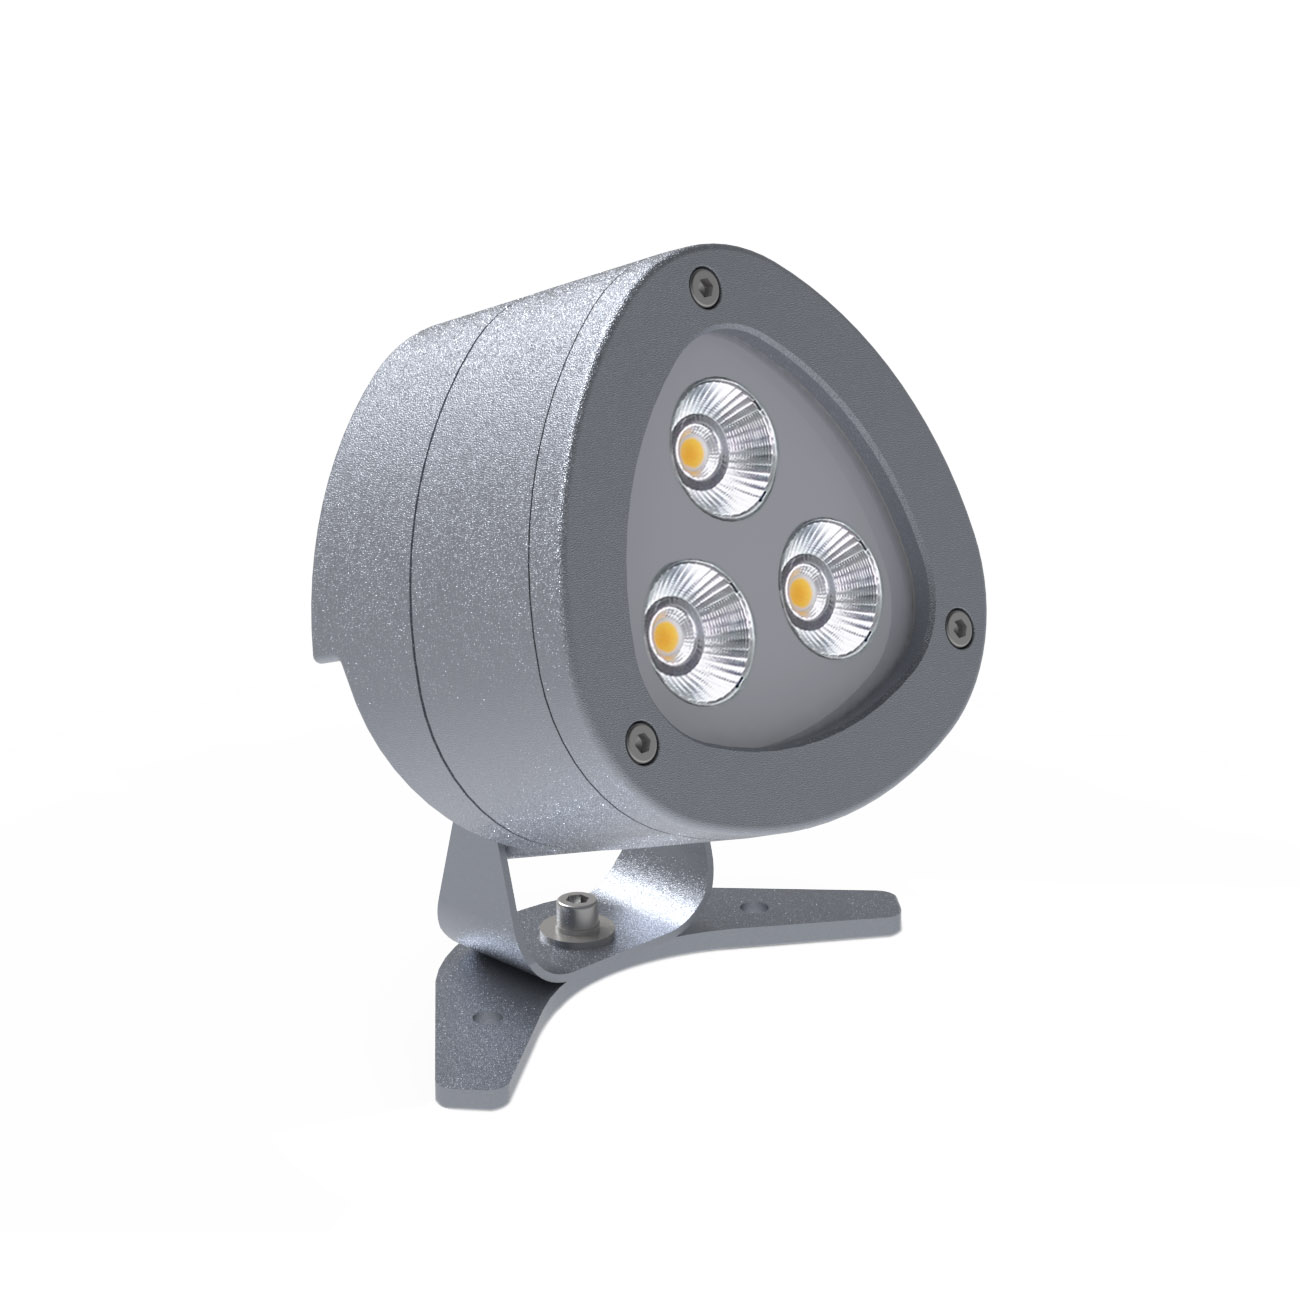 Foco de jardín GARLUX Wall, ChipLed Philips Lumileds, 20W